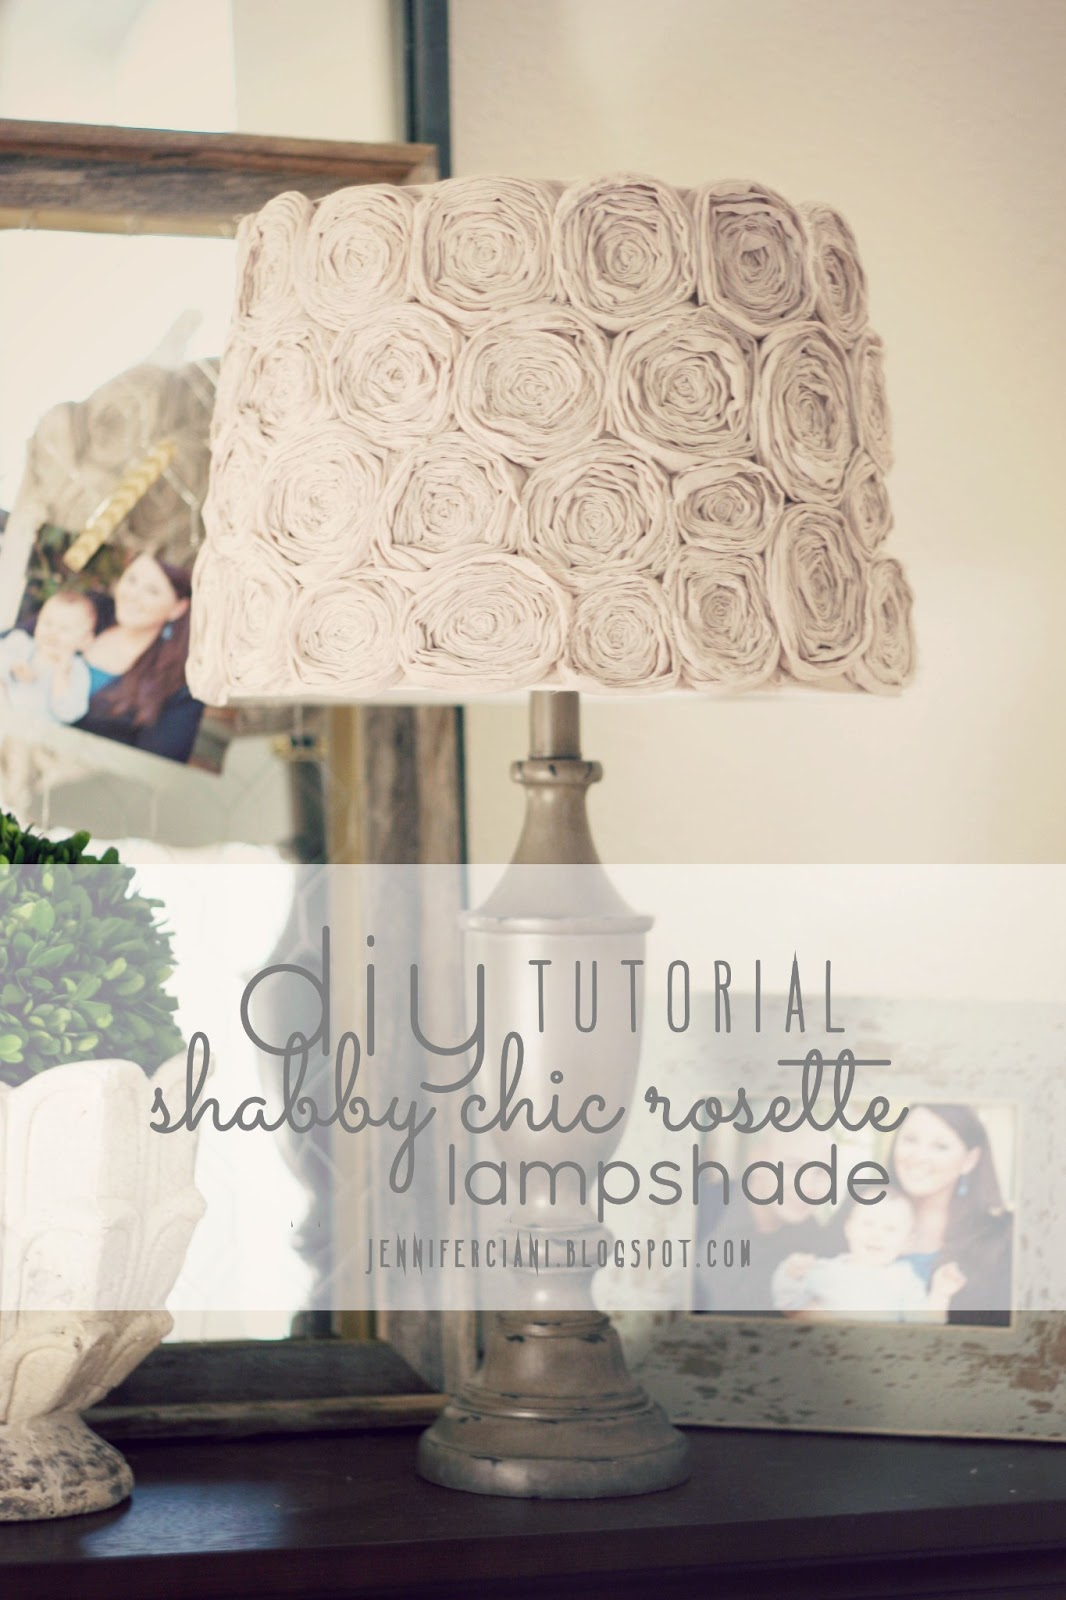 Diy shabby chic rosette lamp shade simply ciani aloadofball Image collections